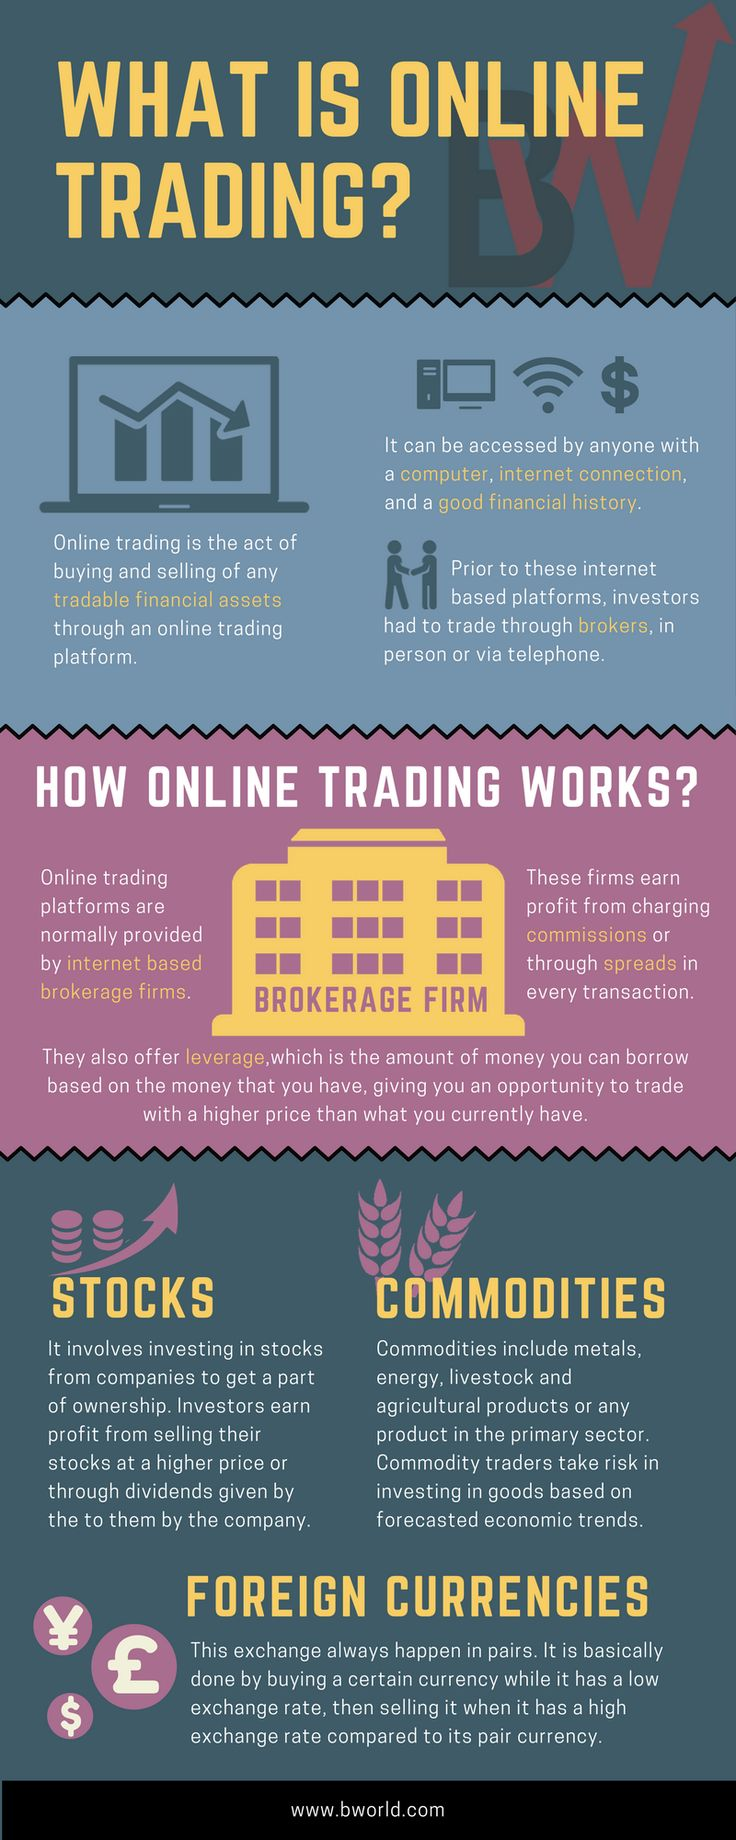 Understand the basics of online trading through an infographic. See it here at http://bit.ly/2q59Cvy  Regularly visit BWorldPedia for more updates